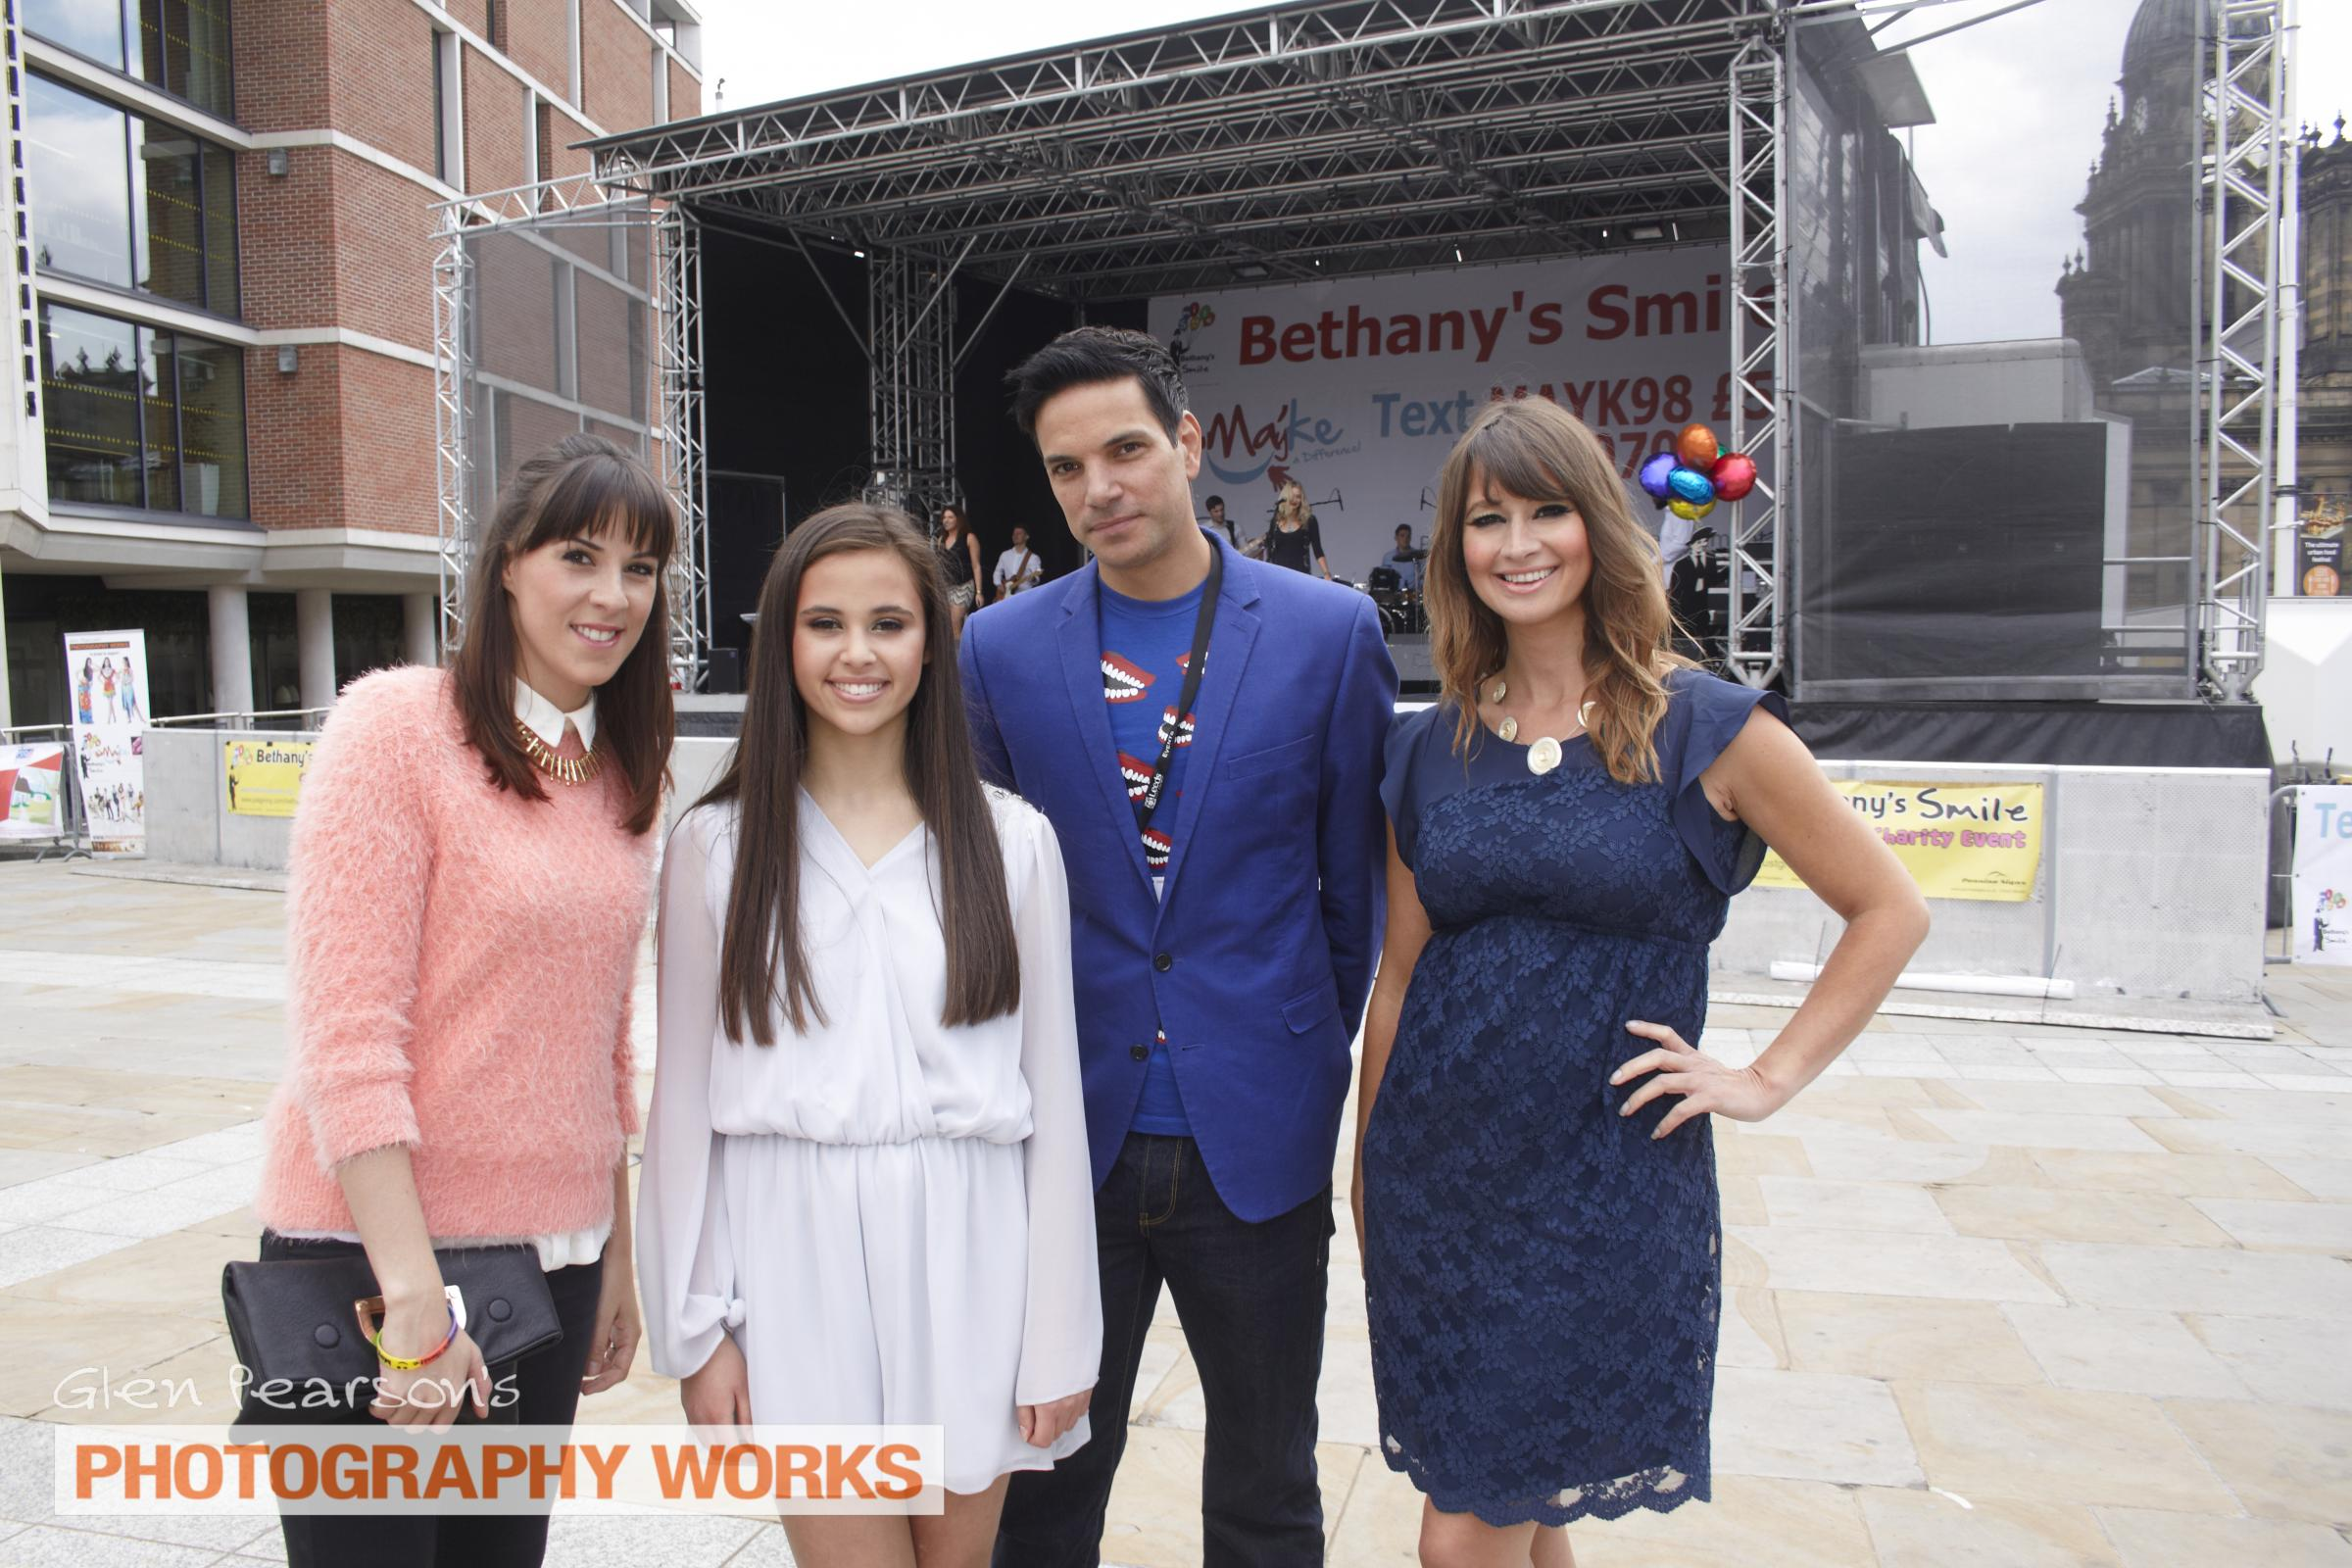 (7032286)Left to right  -Emmerdale  Actress Verity Rushworth, Bethany Hare, Matthew Bose from Emmerdale, BBC TV presenter Ellie Crisell.